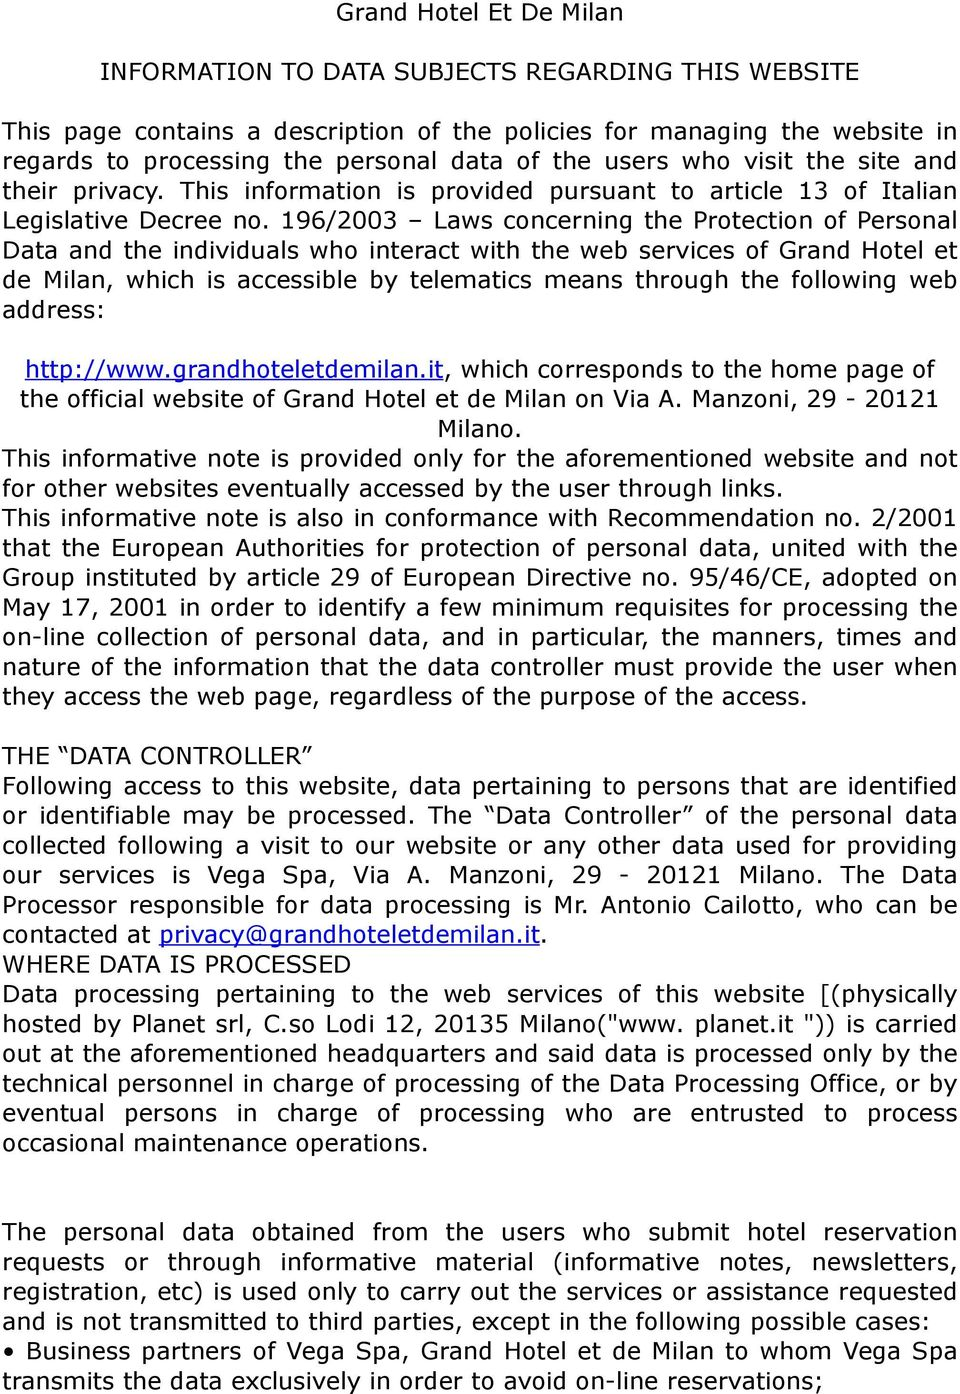 196/2003 Laws concerning the Protection of Personal Data and the individuals who interact with the web services of Grand Hotel et de Milan, which is accessible by telematics means through the